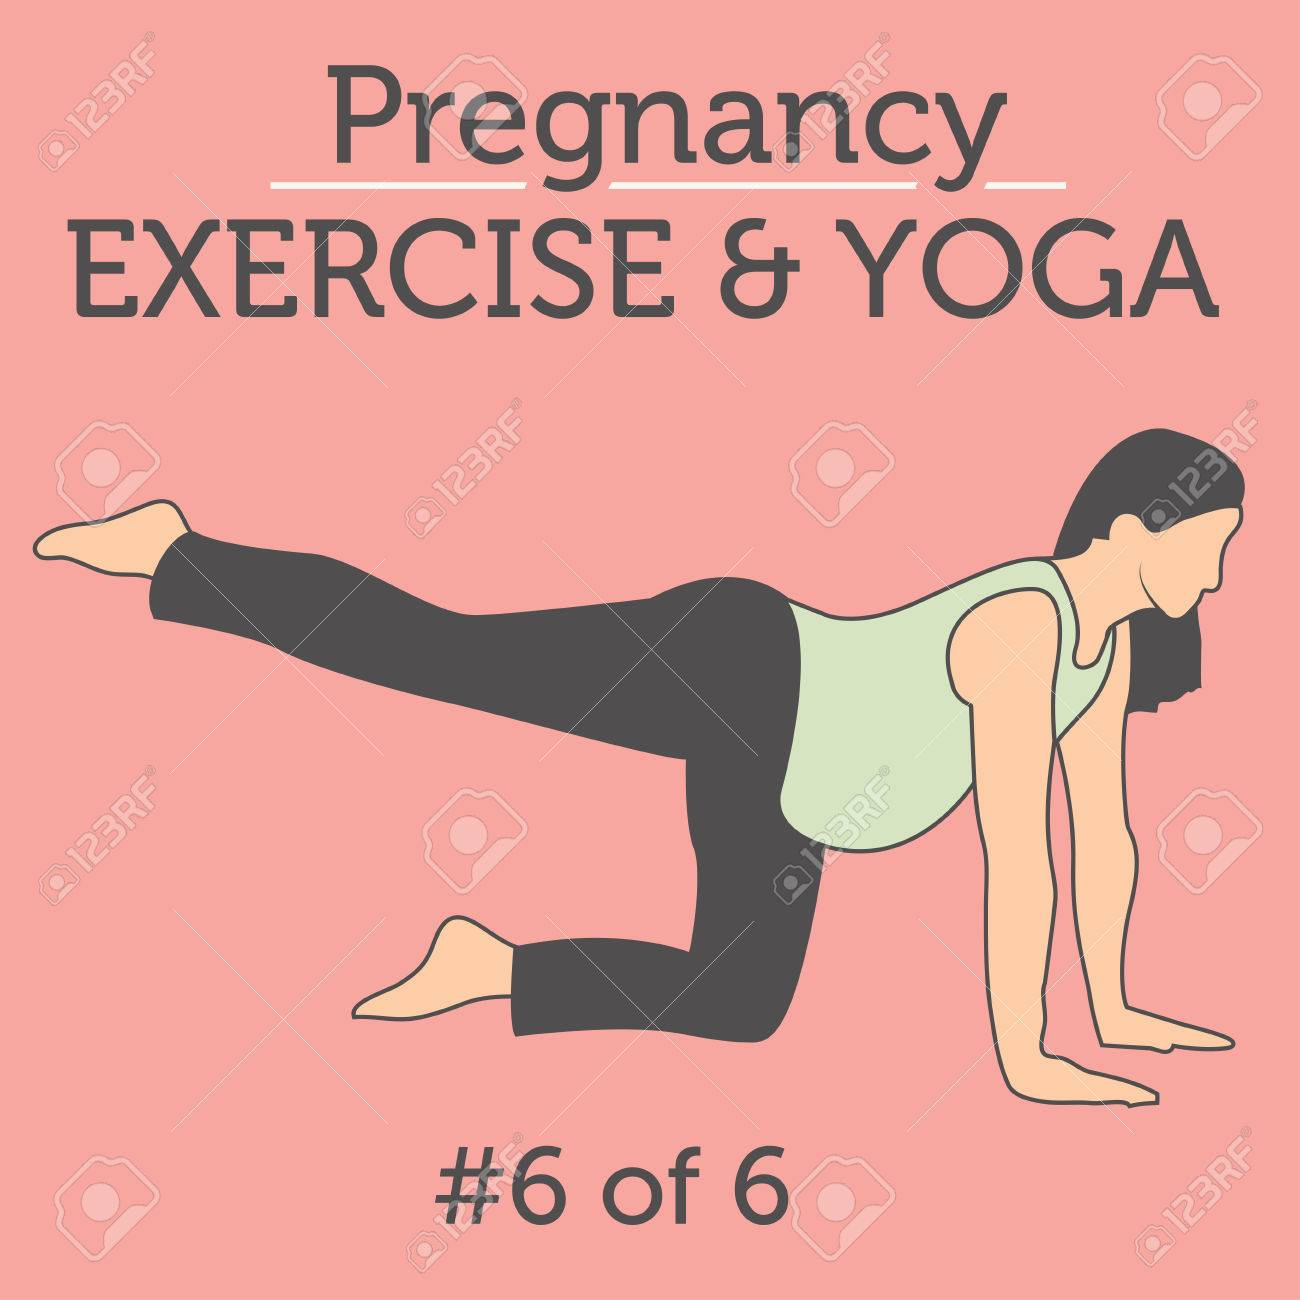 Pregnant Woman In The Expecting Stages Of Birth Stretching Or Royalty Free Cliparts Vectors And Stock Illustration Image 54669673